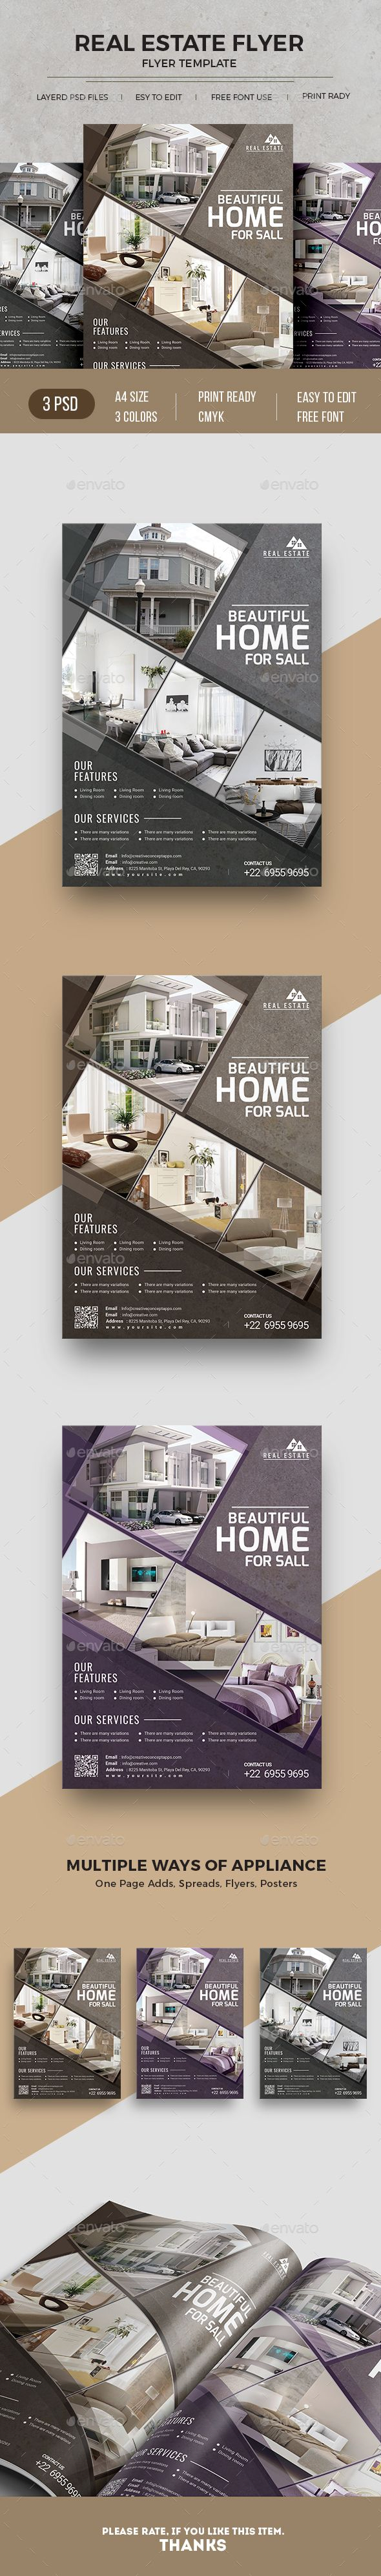 Real Estate Flyer by themedevisers Simple Real Estate Flyer Template is a great tool for promoting your real estate business also useful for a realtor or a real esta